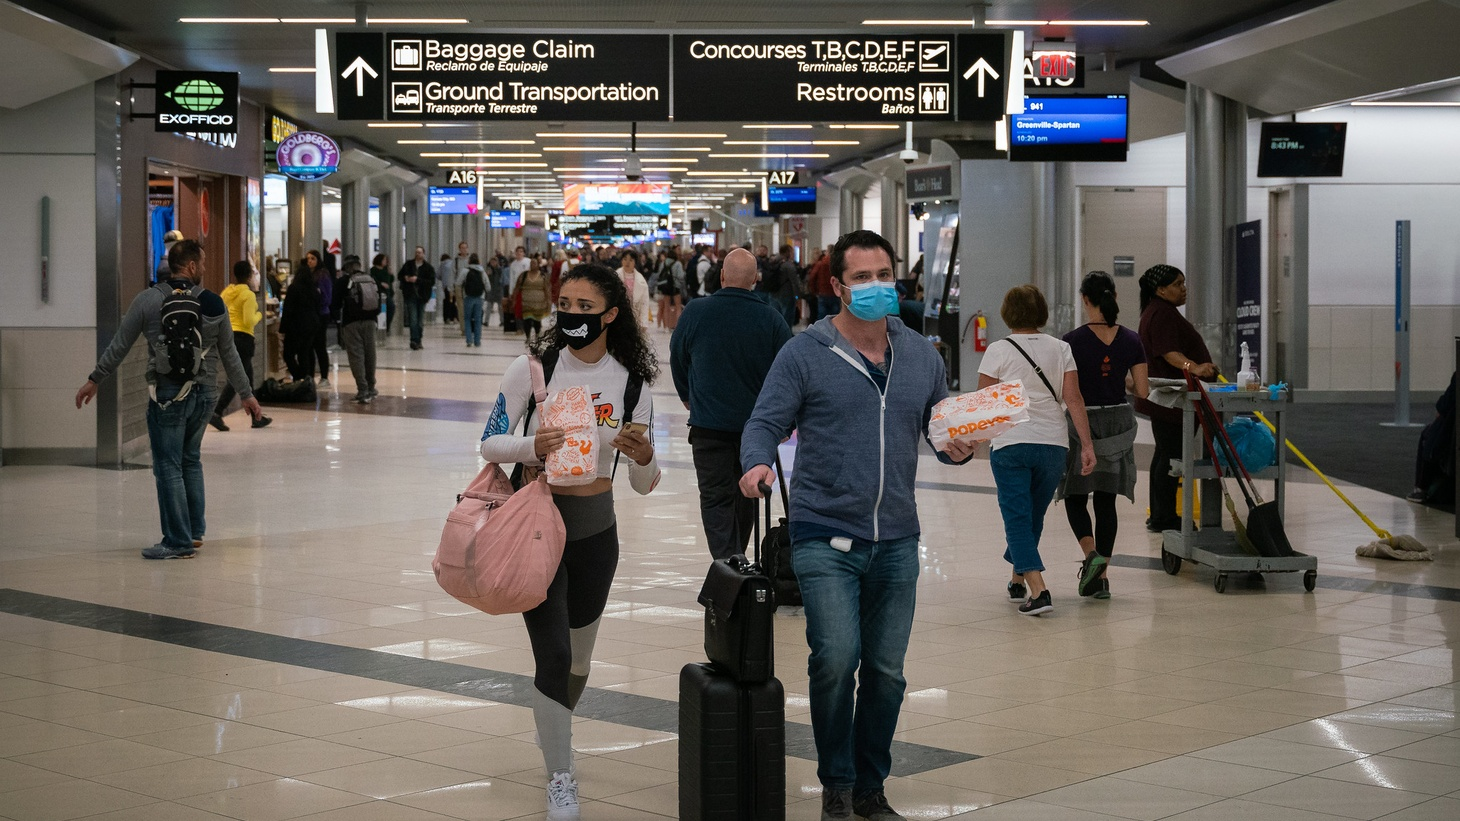 Flyers at Hartsfield-Jackson Atlanta International Airport wearing facemasks on March 6, 2020 as the COVID-19 coronavirus spreads throughout the United States.